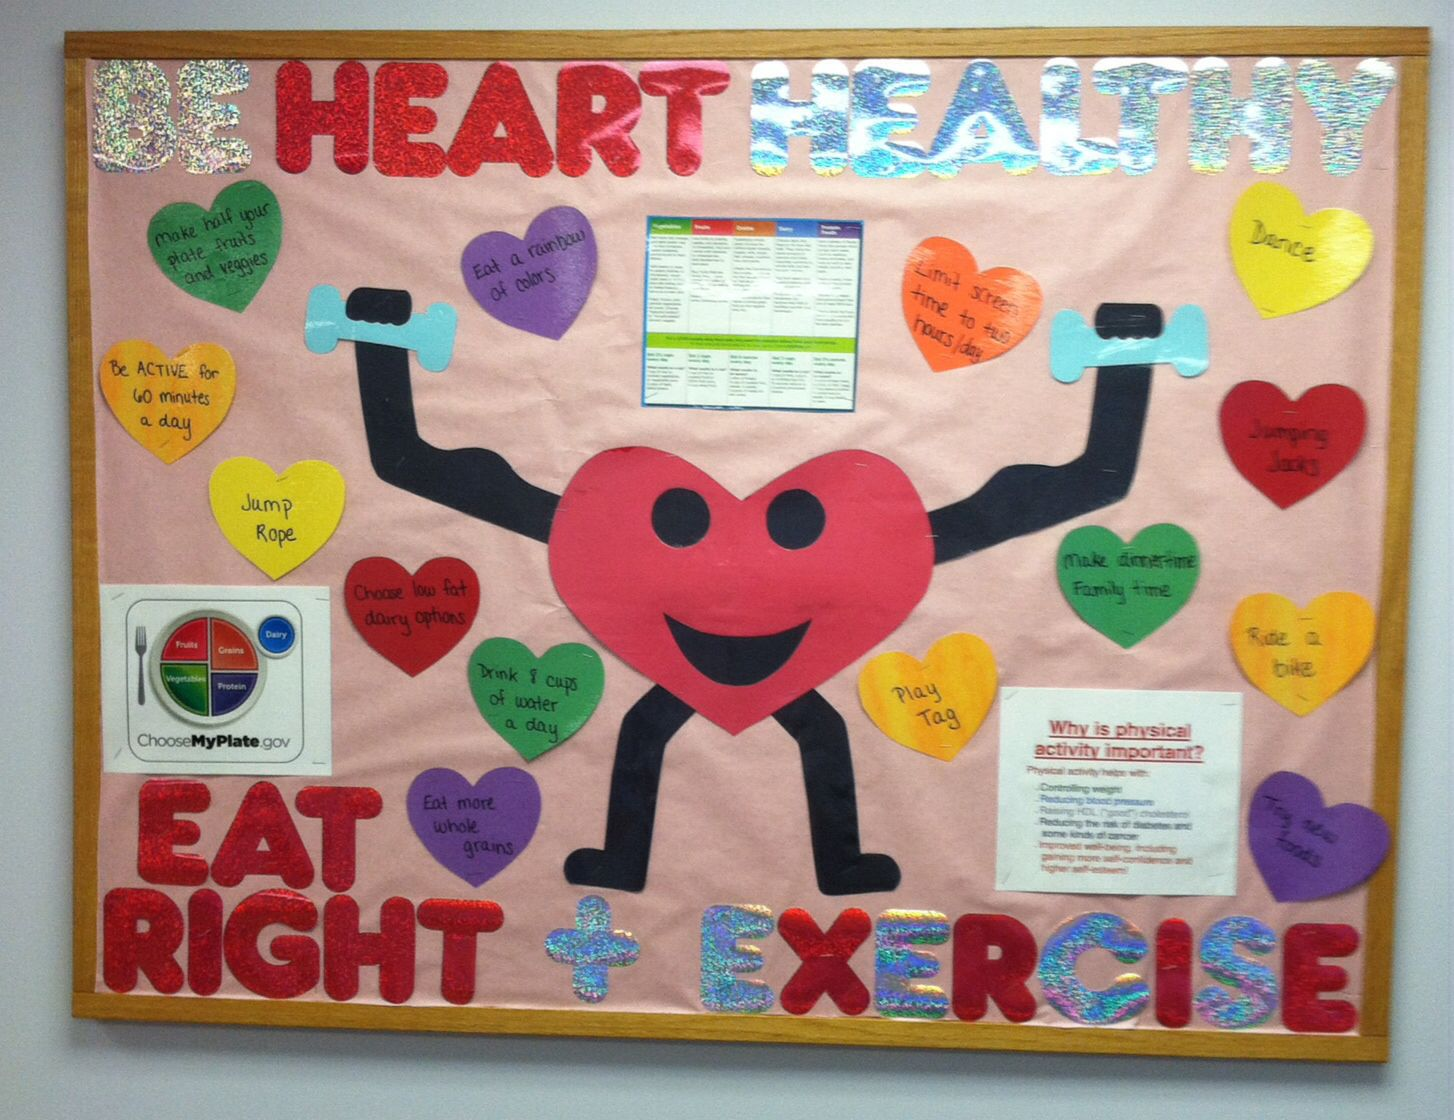 Be heart healthy eat right exercise my february for Heart shaped bulletin board